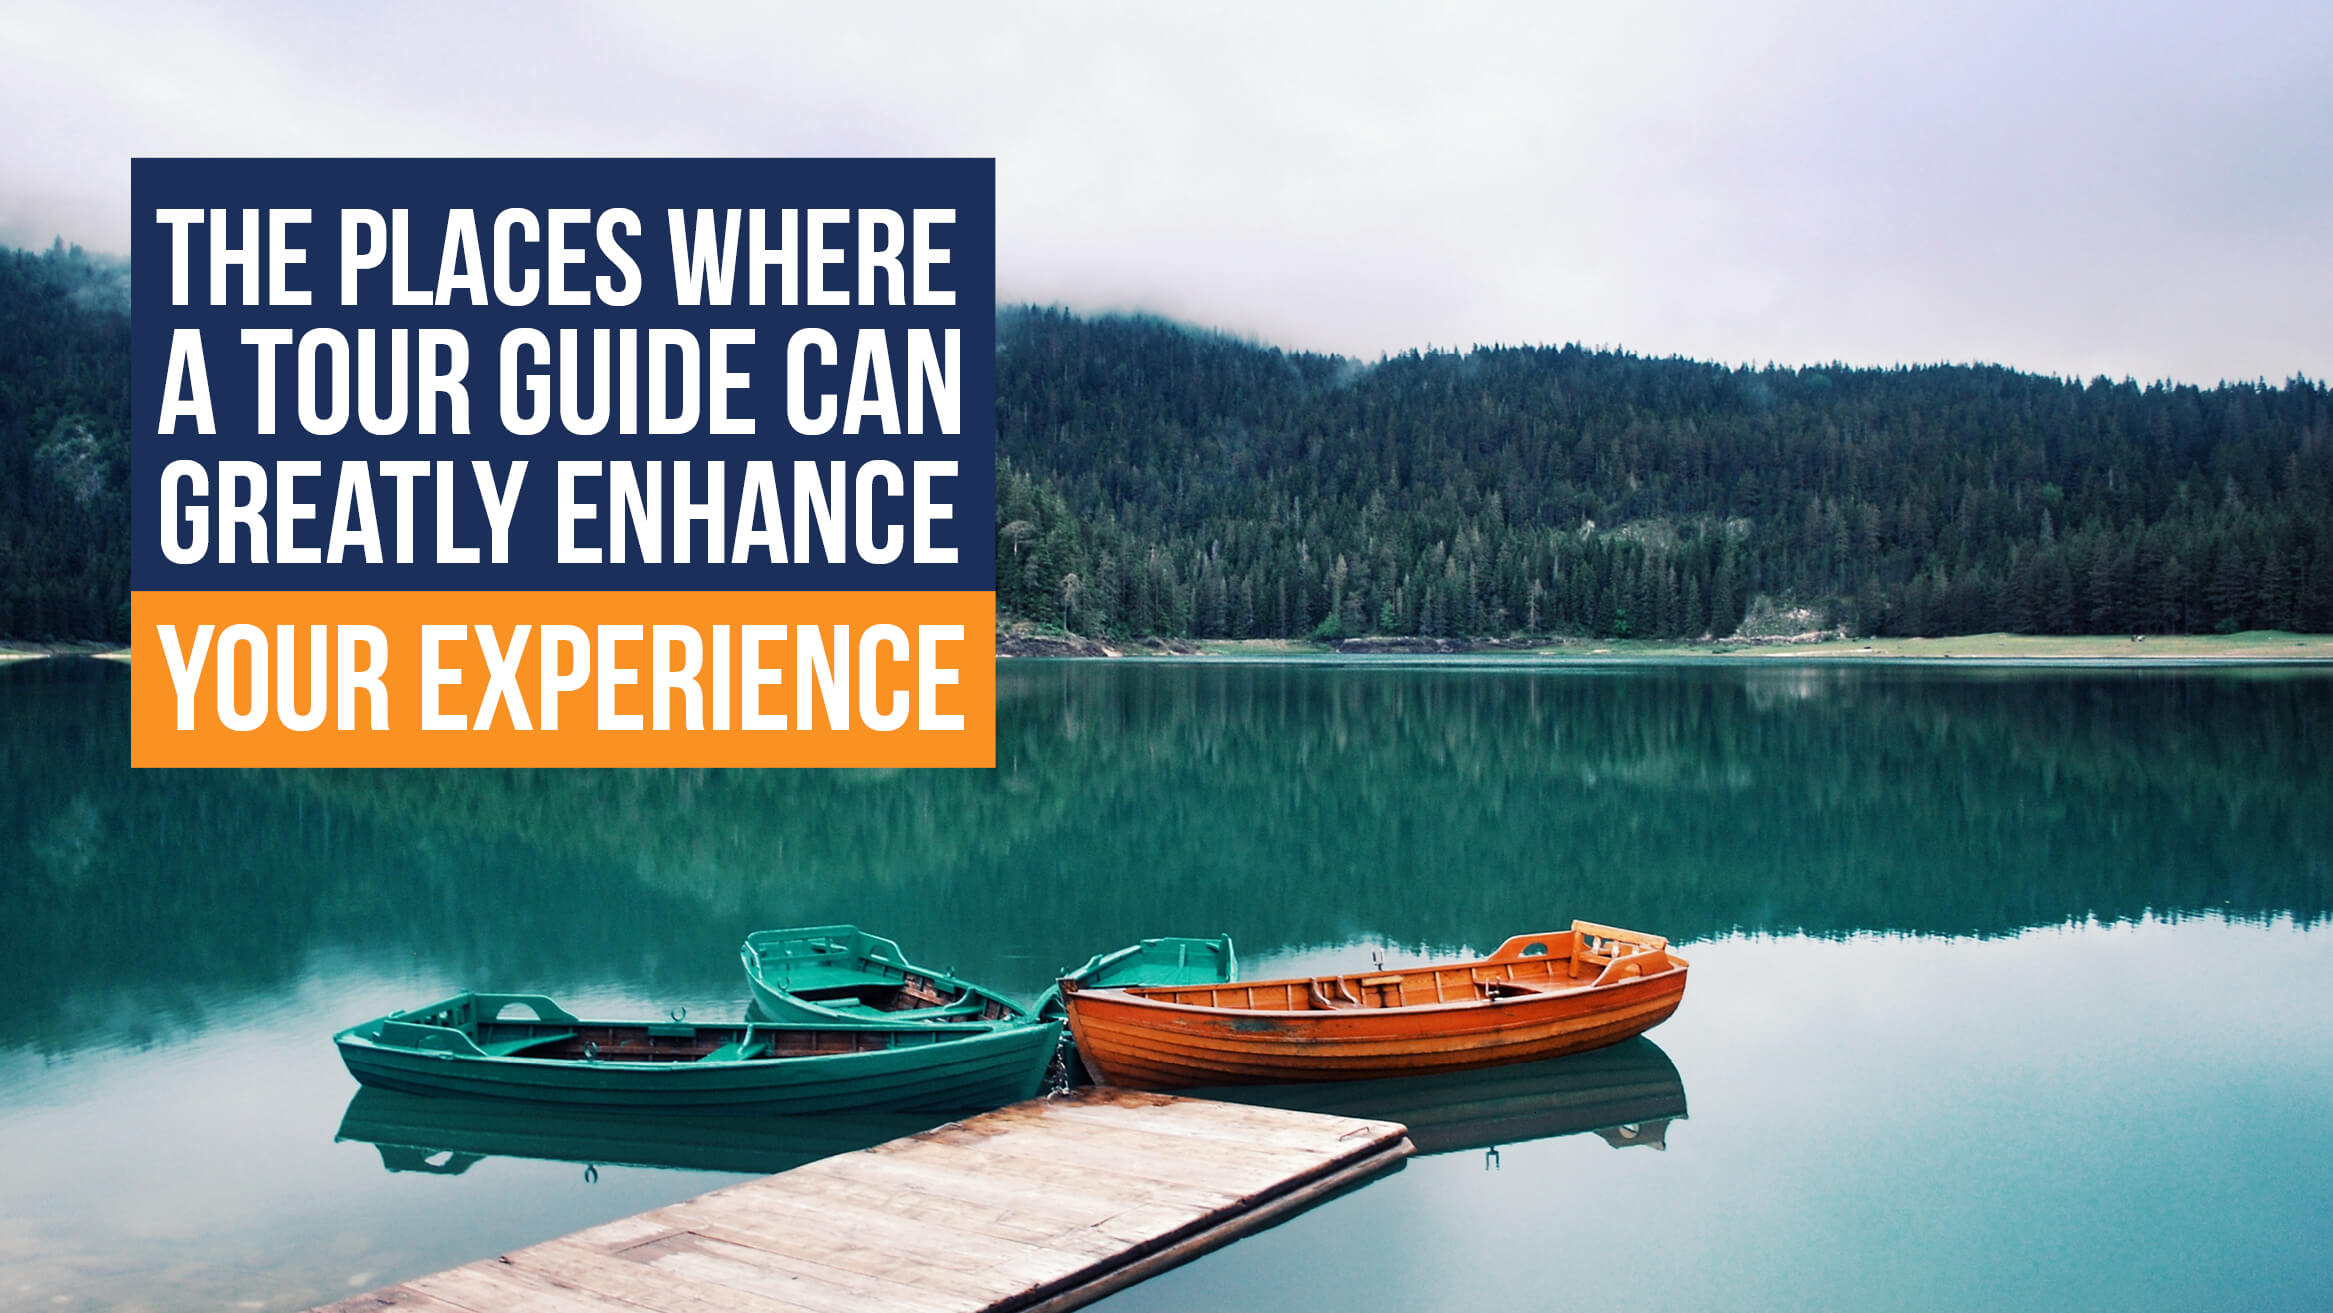 The Places Where a Tour Guide can Greatly Enhance Your Experience header